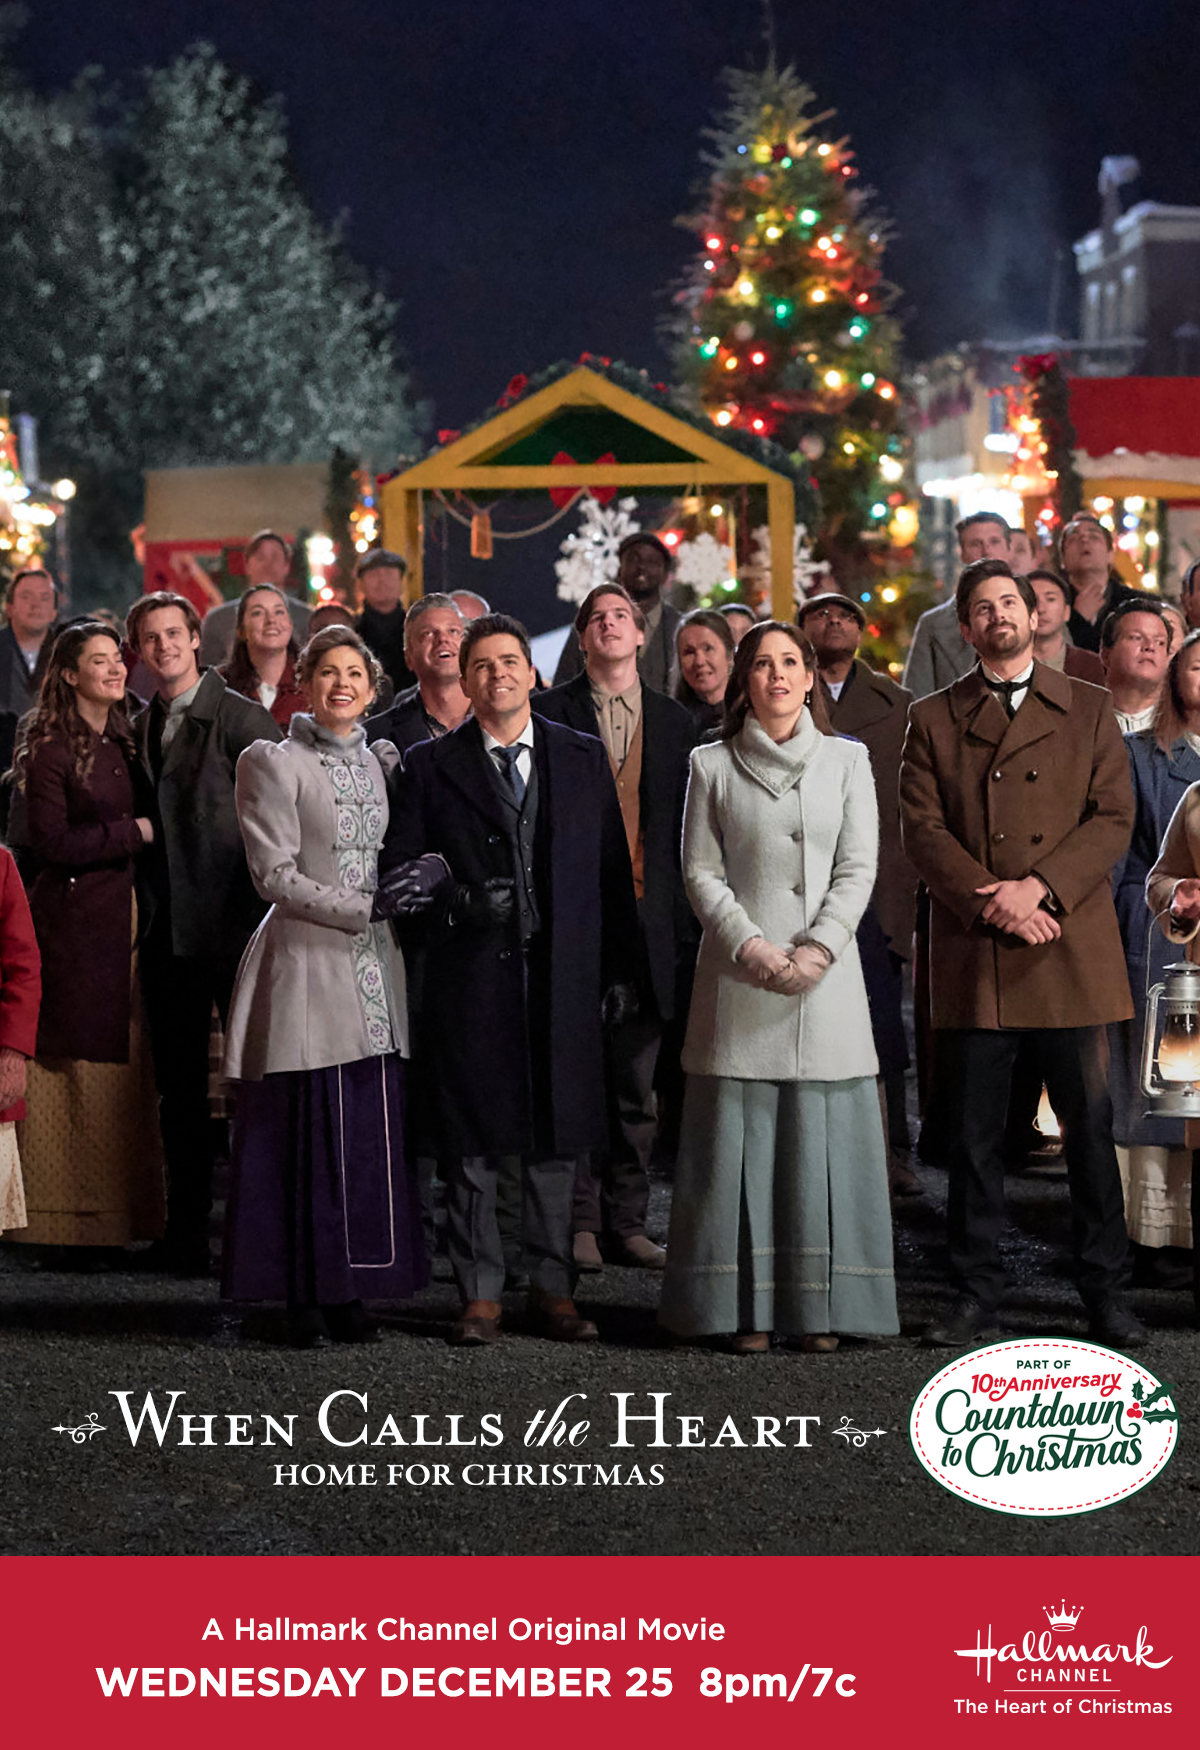 Christmas 2020 When Calls The Heart Celebrate the 10th anniversary of Countdown to Christmas in Hope